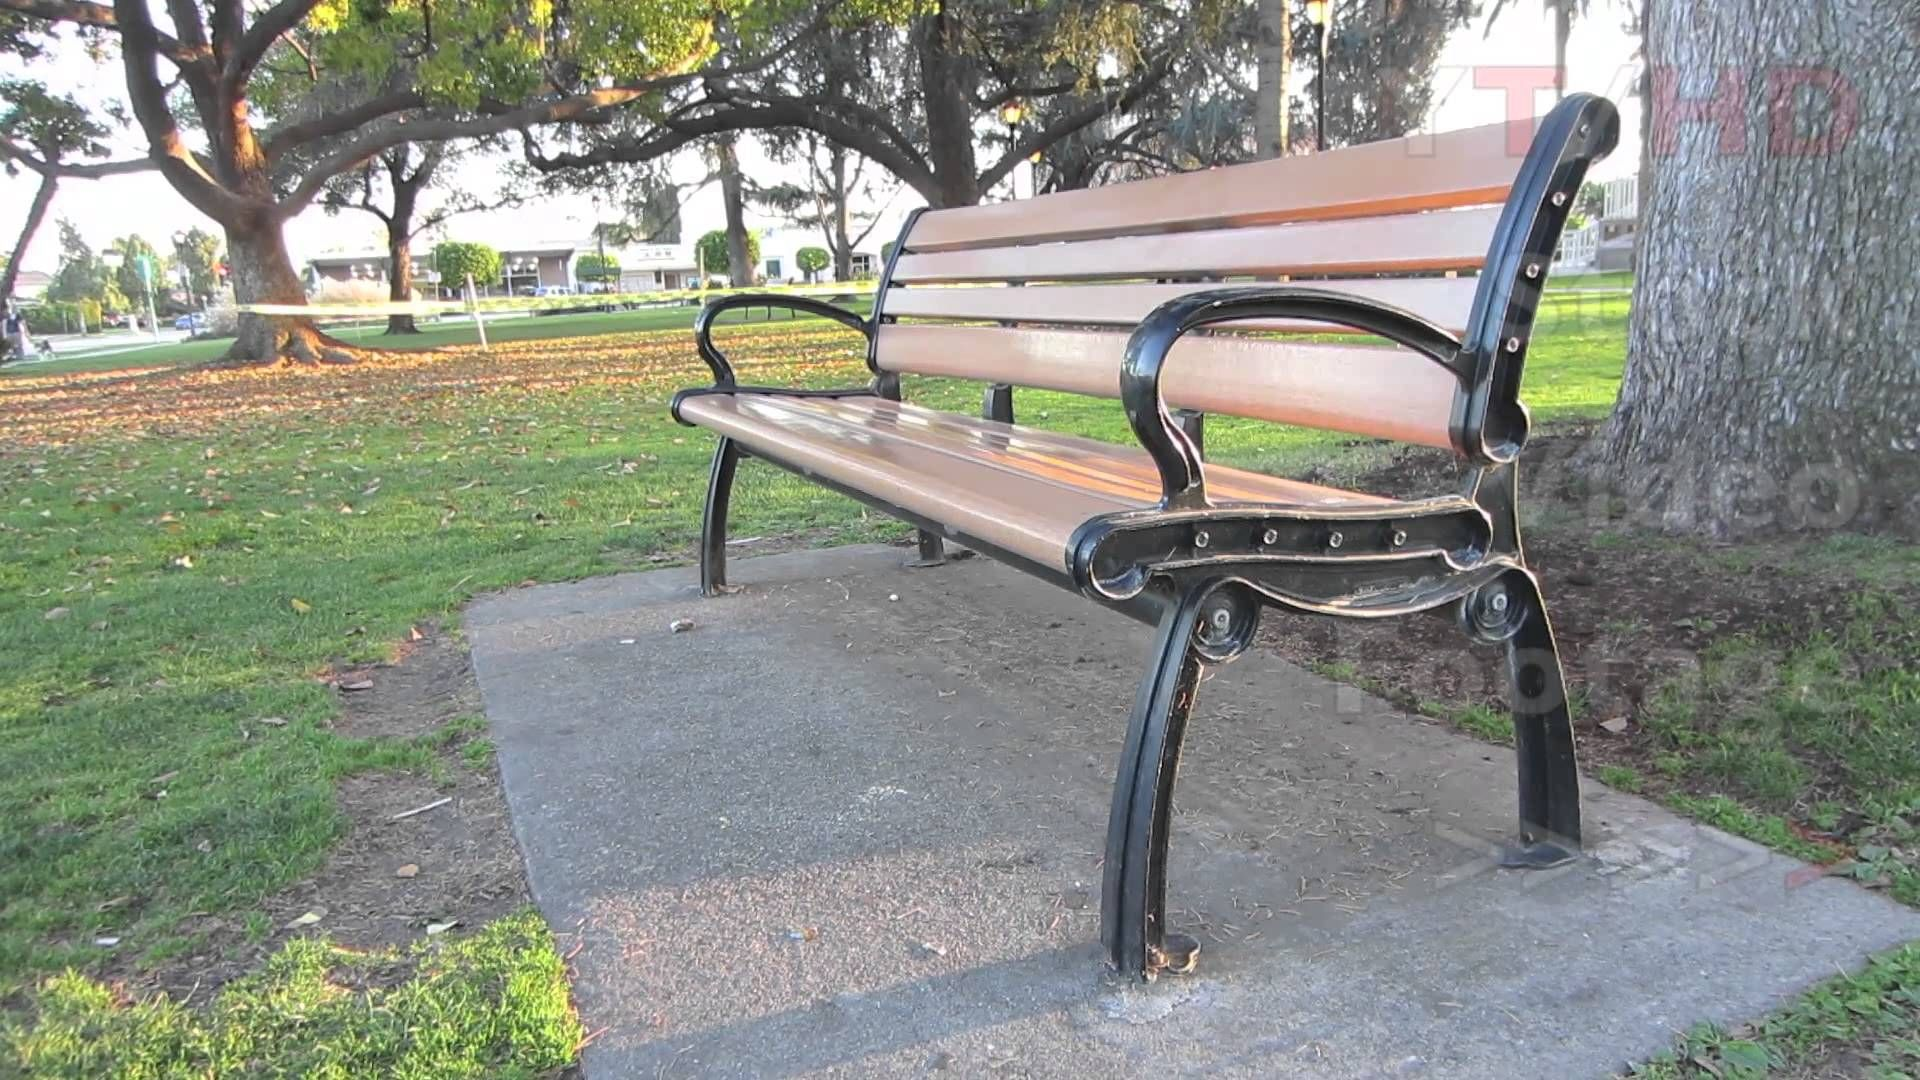 Tremendous Outdoor Public Wooden Park Bench W Metal Wrought Or Cast Caraccident5 Cool Chair Designs And Ideas Caraccident5Info